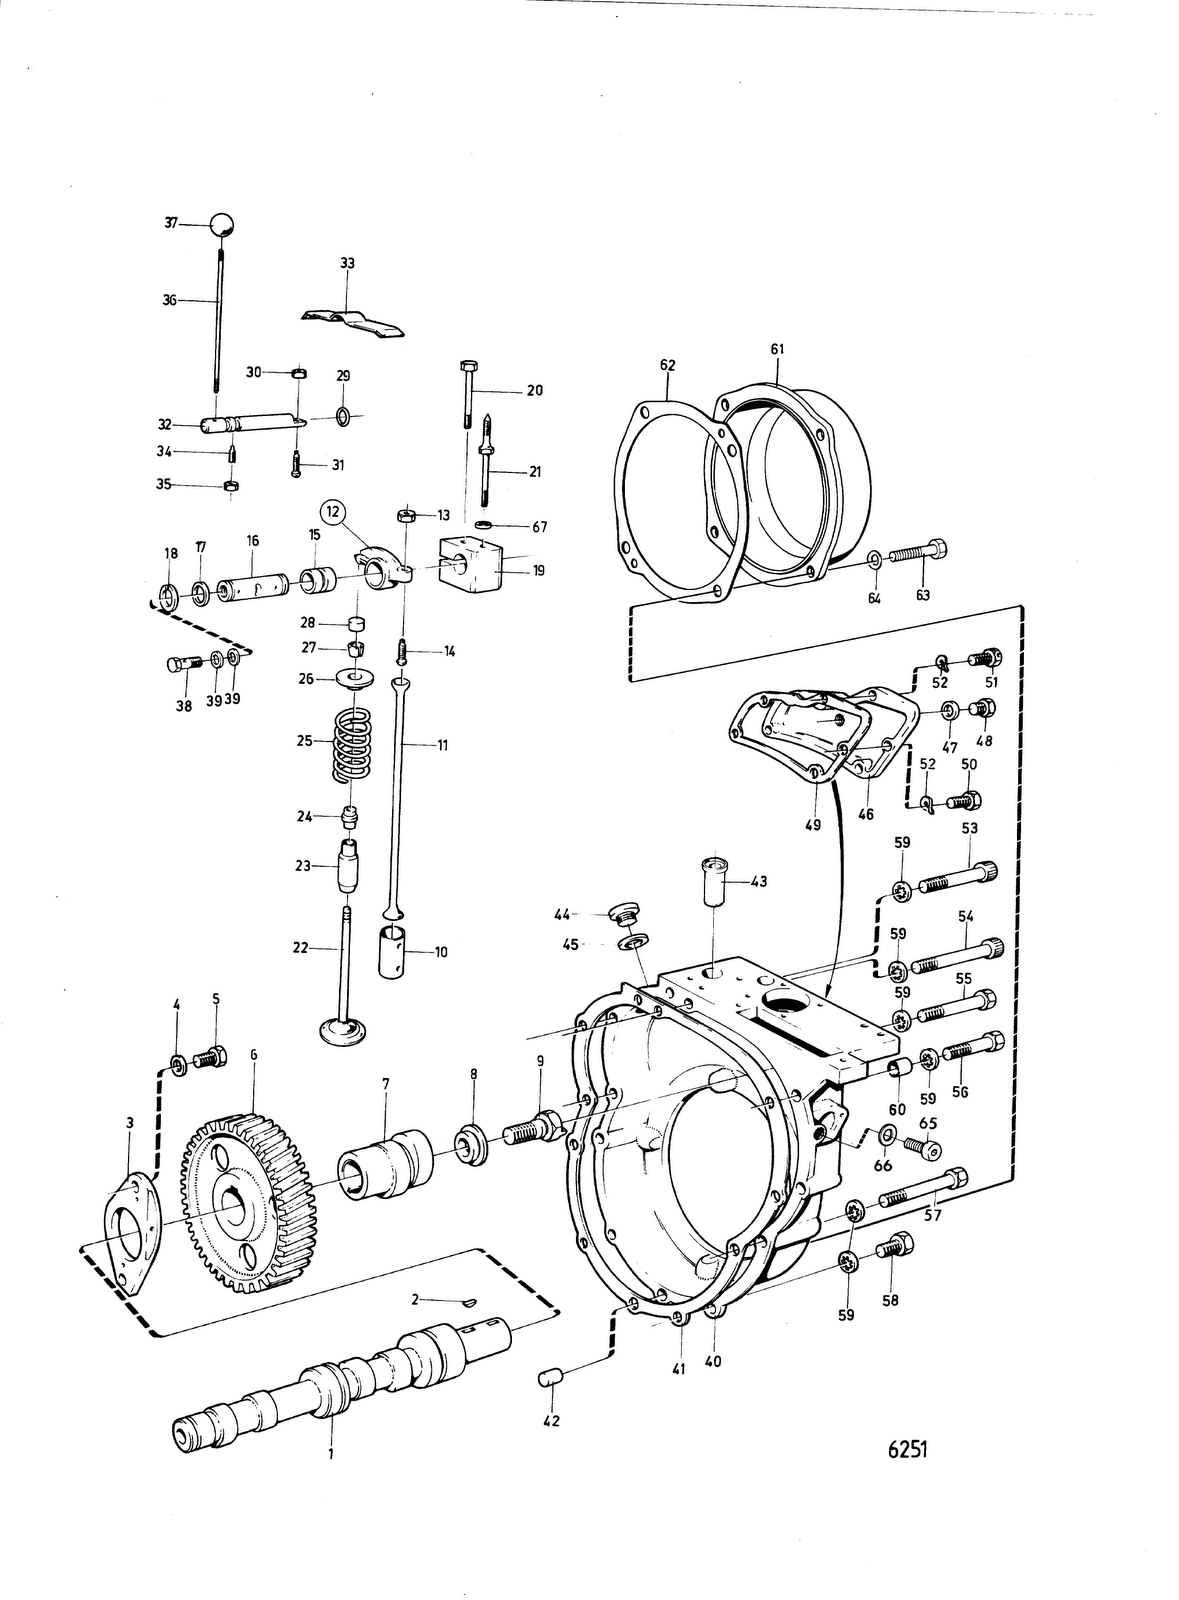 hight resolution of volvo penta md11c d manual repair engine marine md17c d online volvo penta md11c wiring diagram